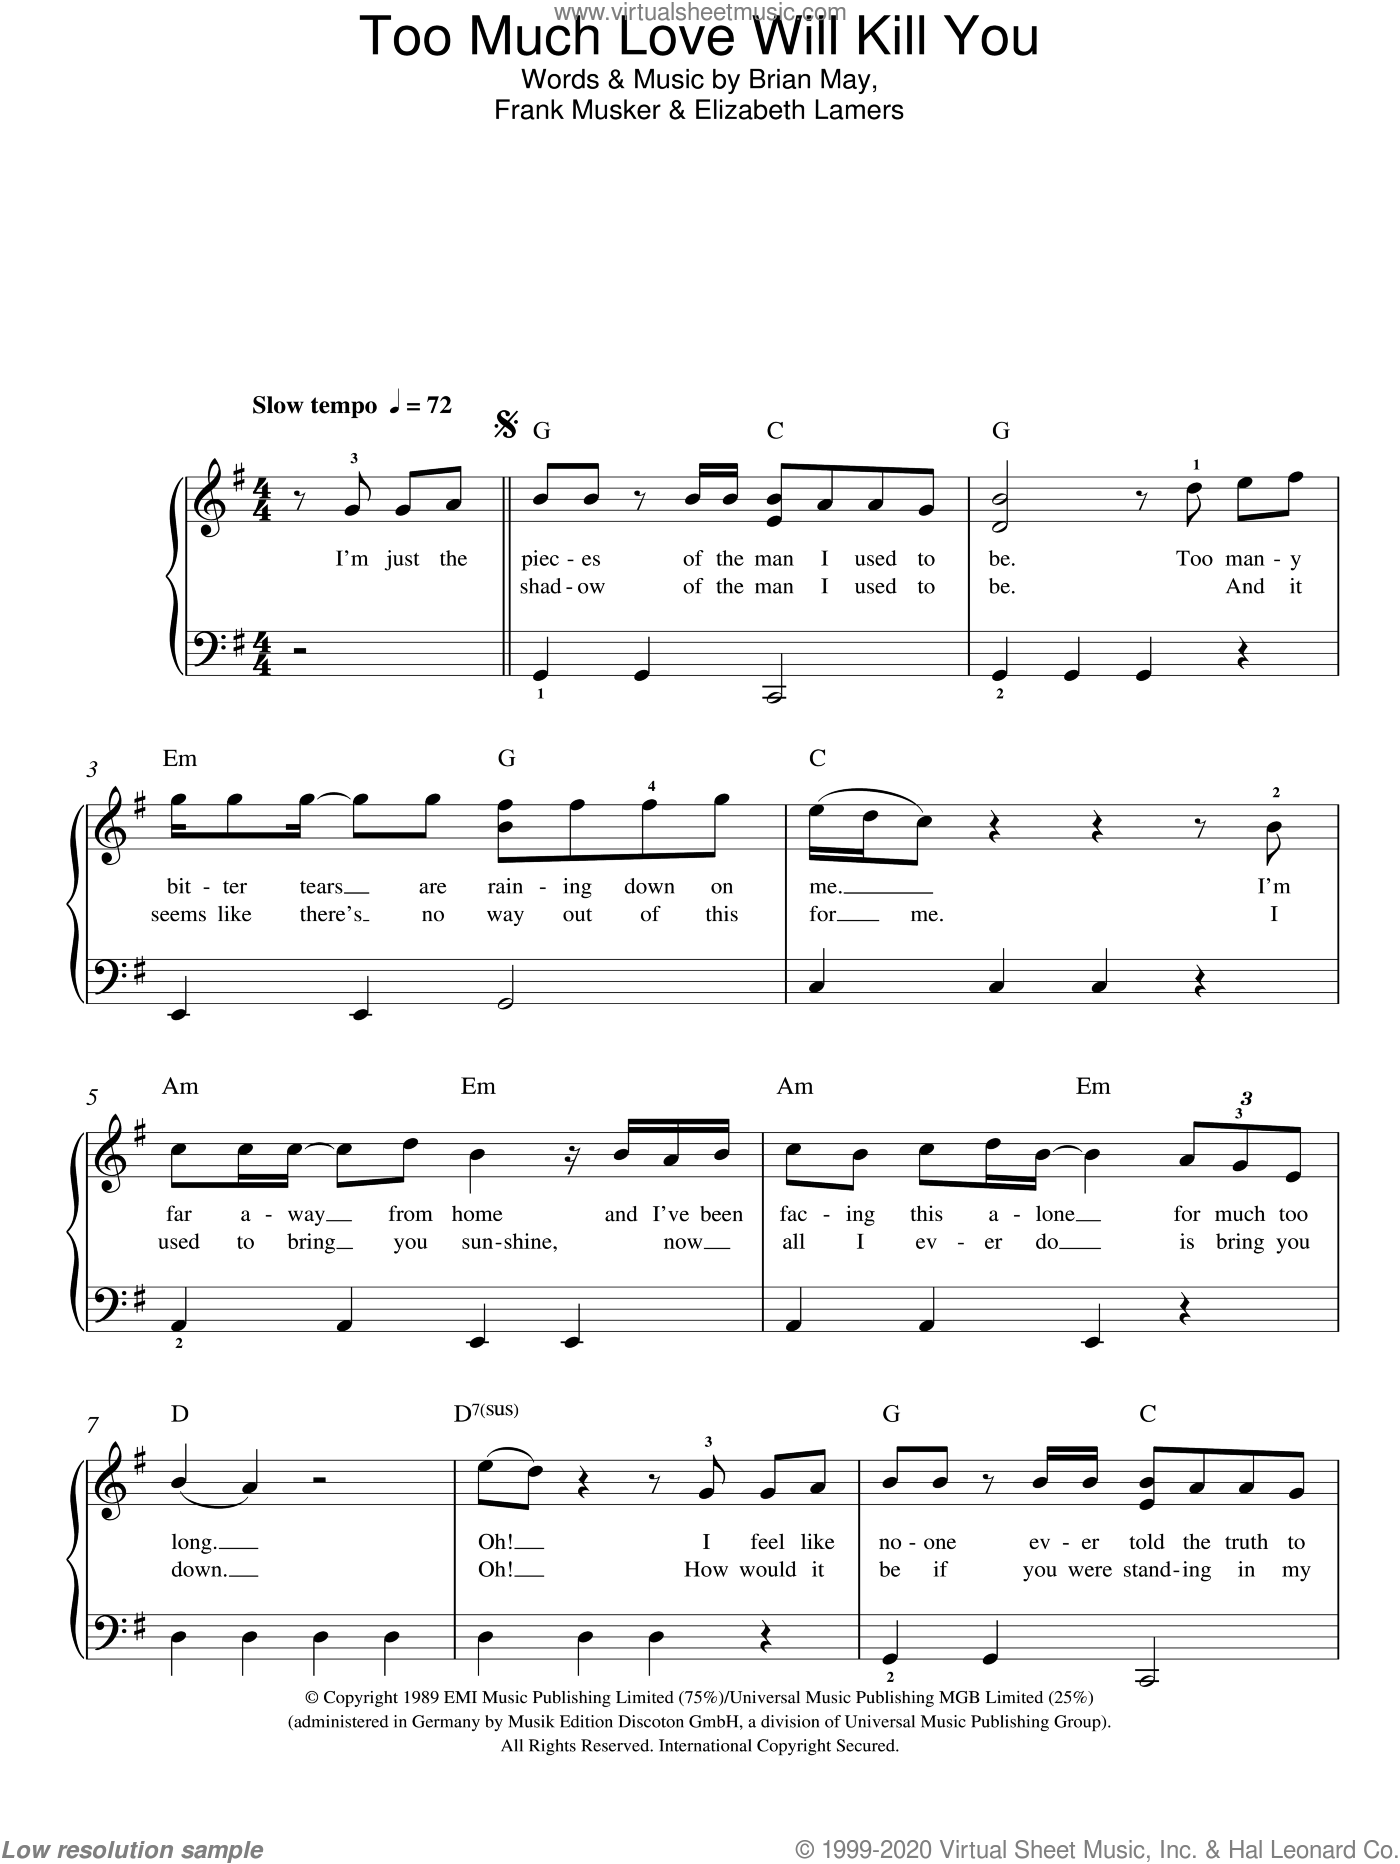 Too Much Love Will Kill You sheet music for piano solo by Queen, Brian May, Elizabeth Lamers and Frank Musker, easy skill level